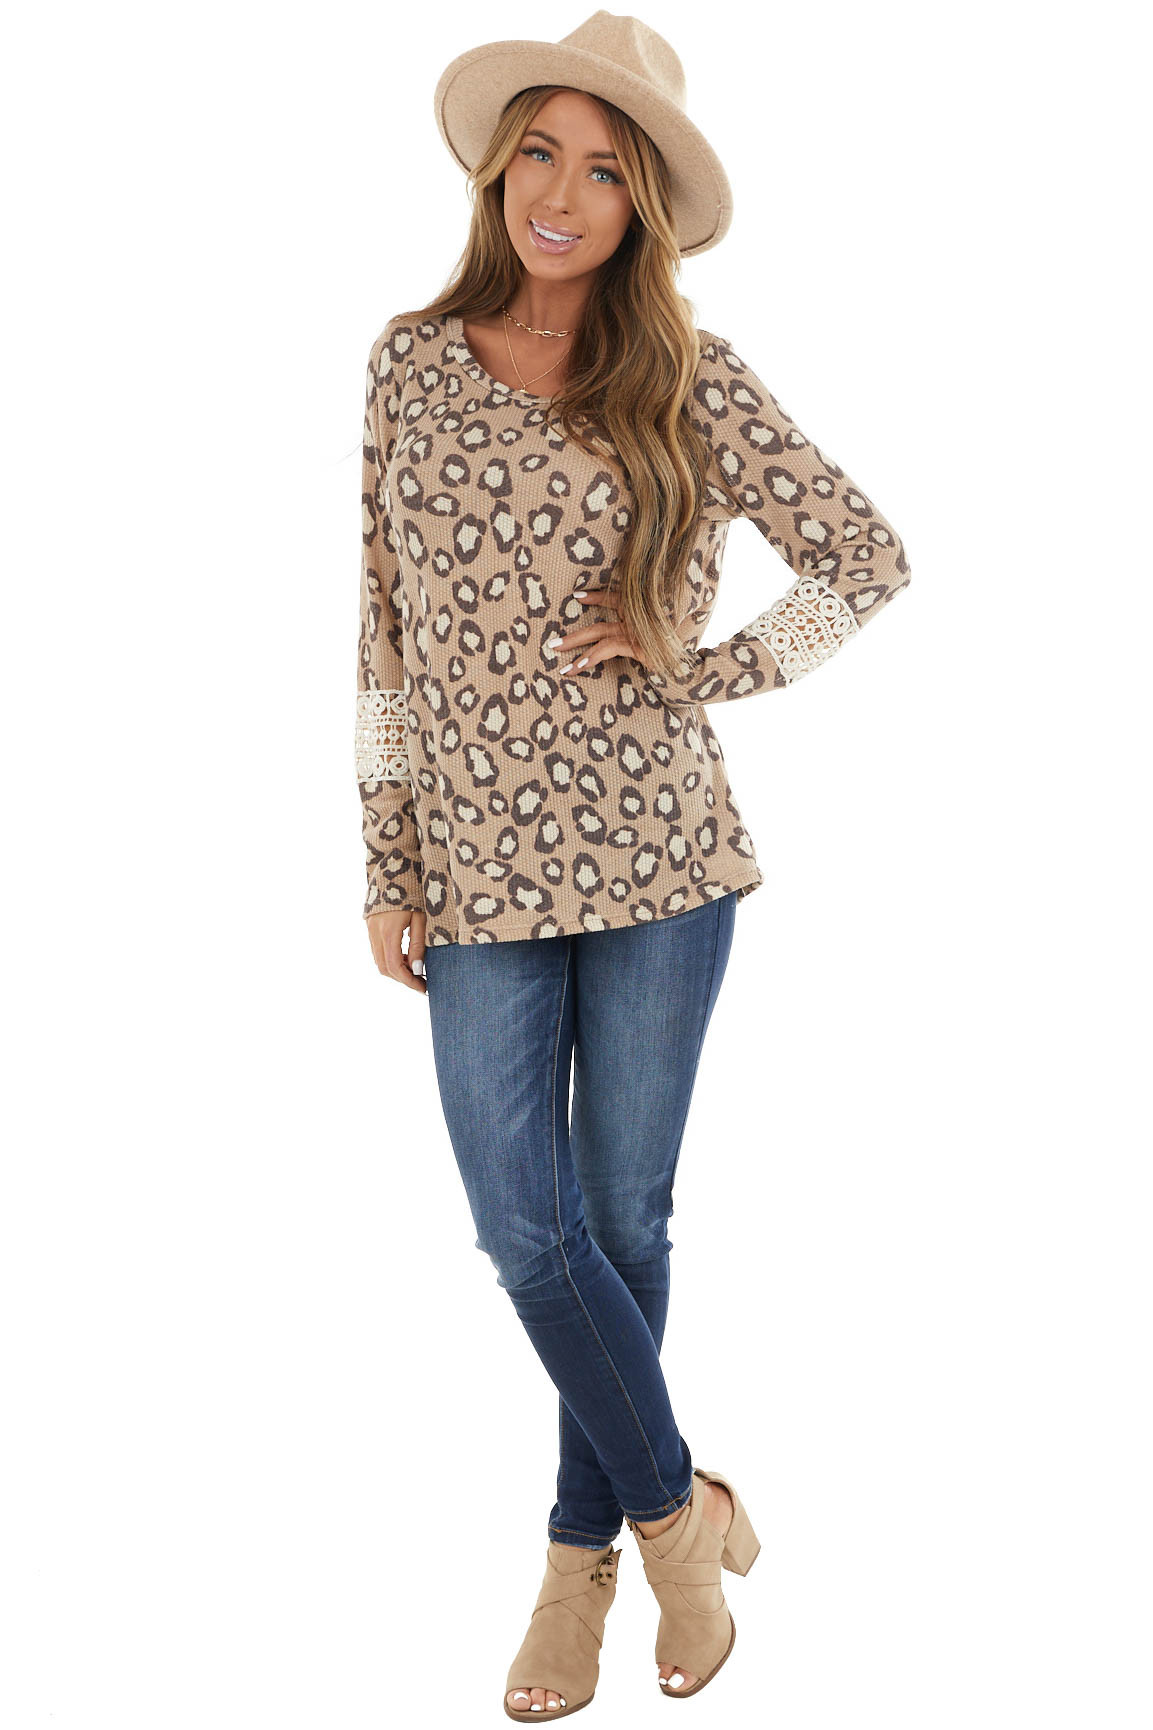 Latte Leopard Print Top with Crochet Lace Detail on Sleeves